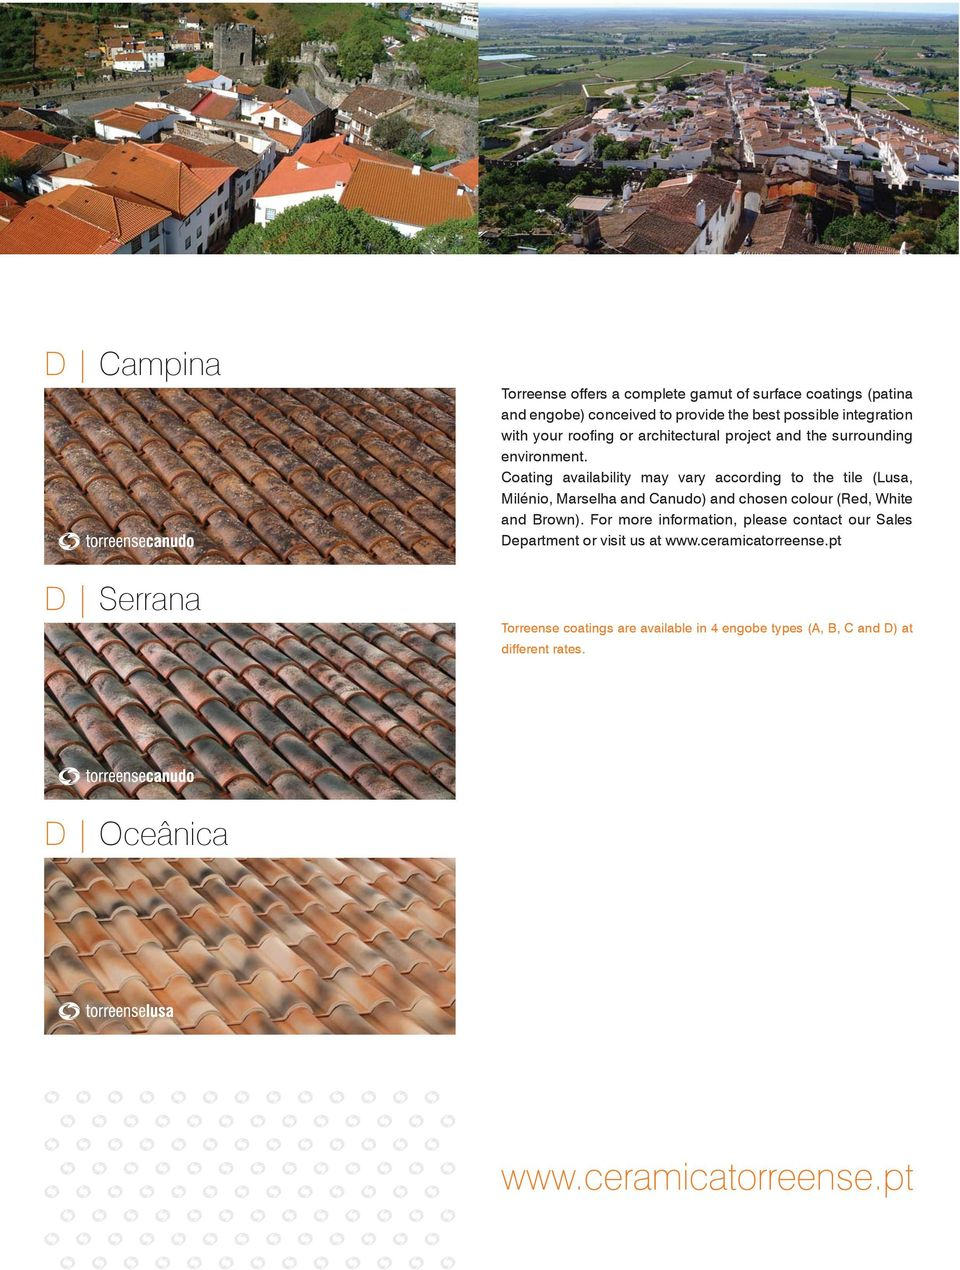 Coating availability may vary according to the tile (Lusa, Milénio, Marselha and Canudo) and chosen colour (Red, White and Brown).